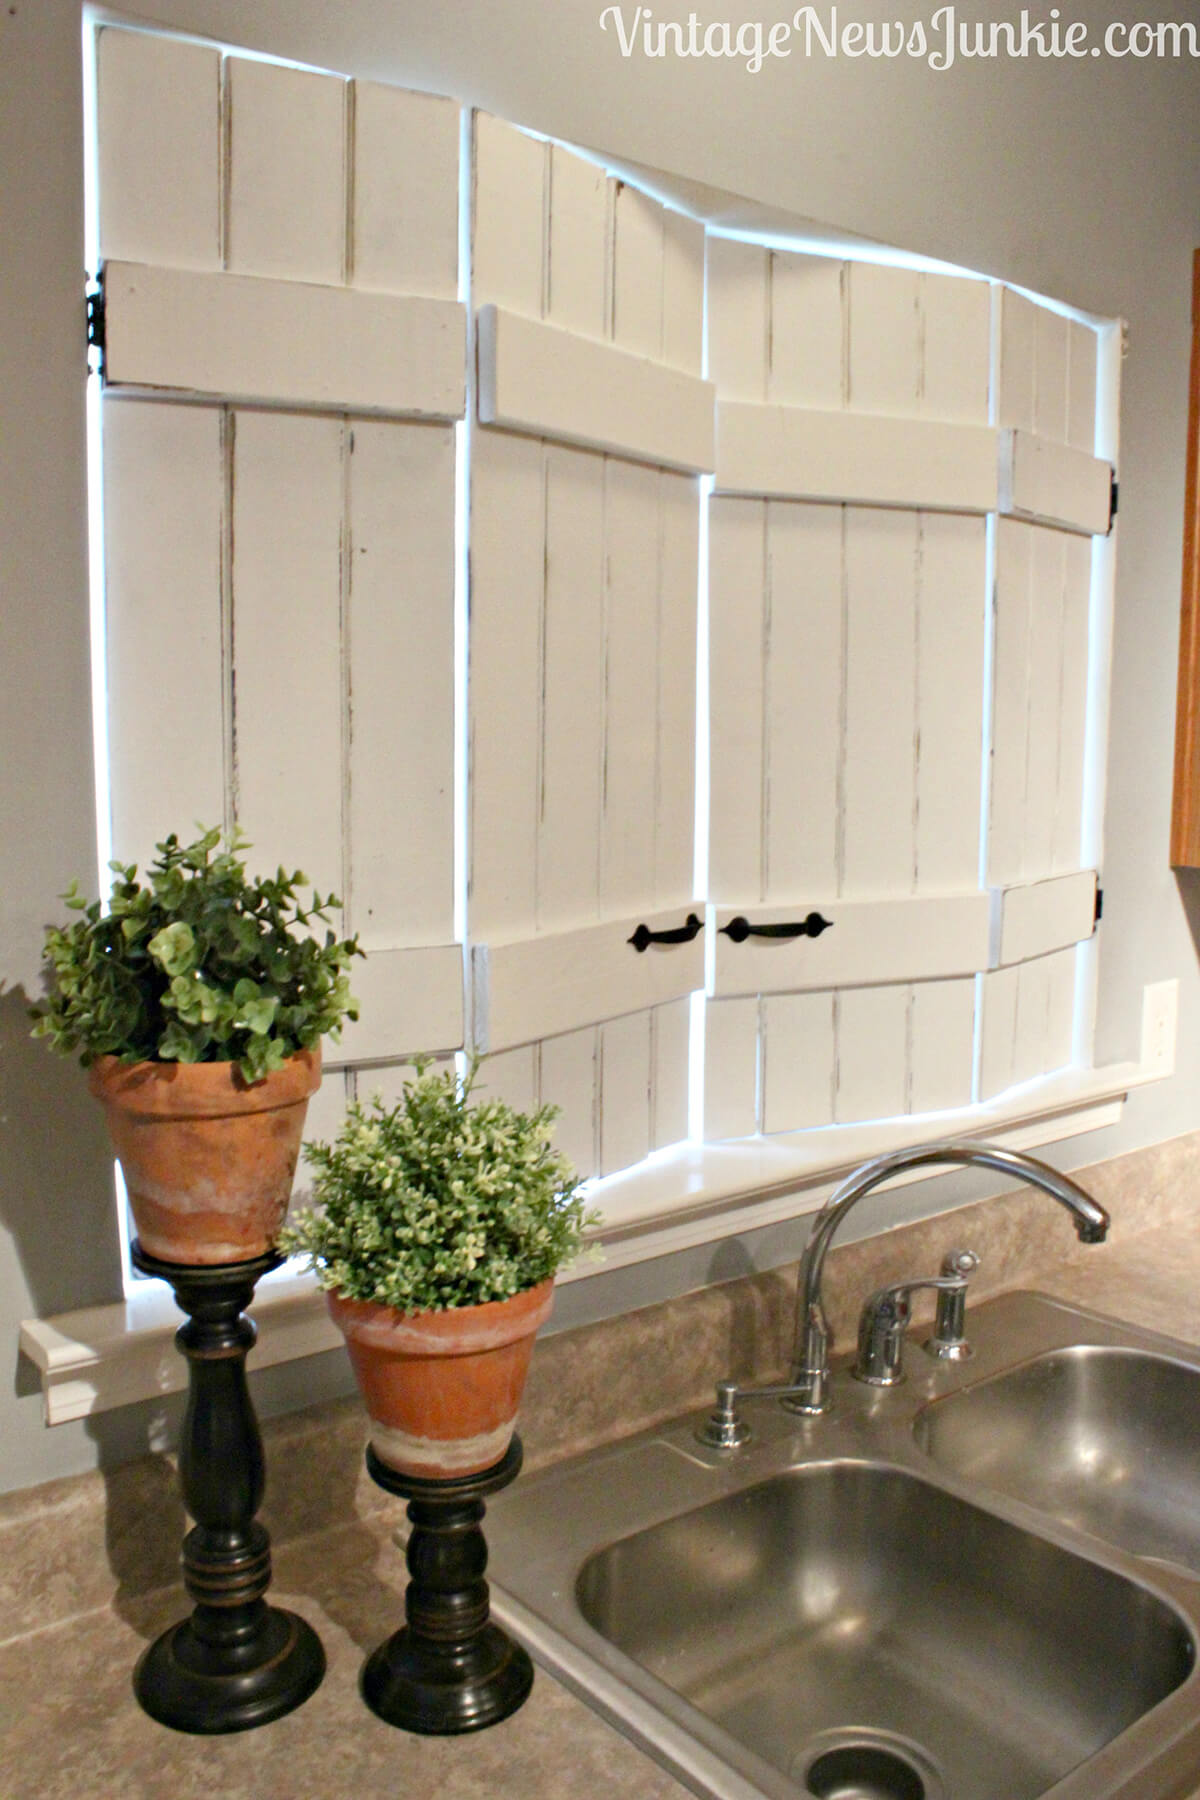 Rustic White Window Shutters in the Kitchen